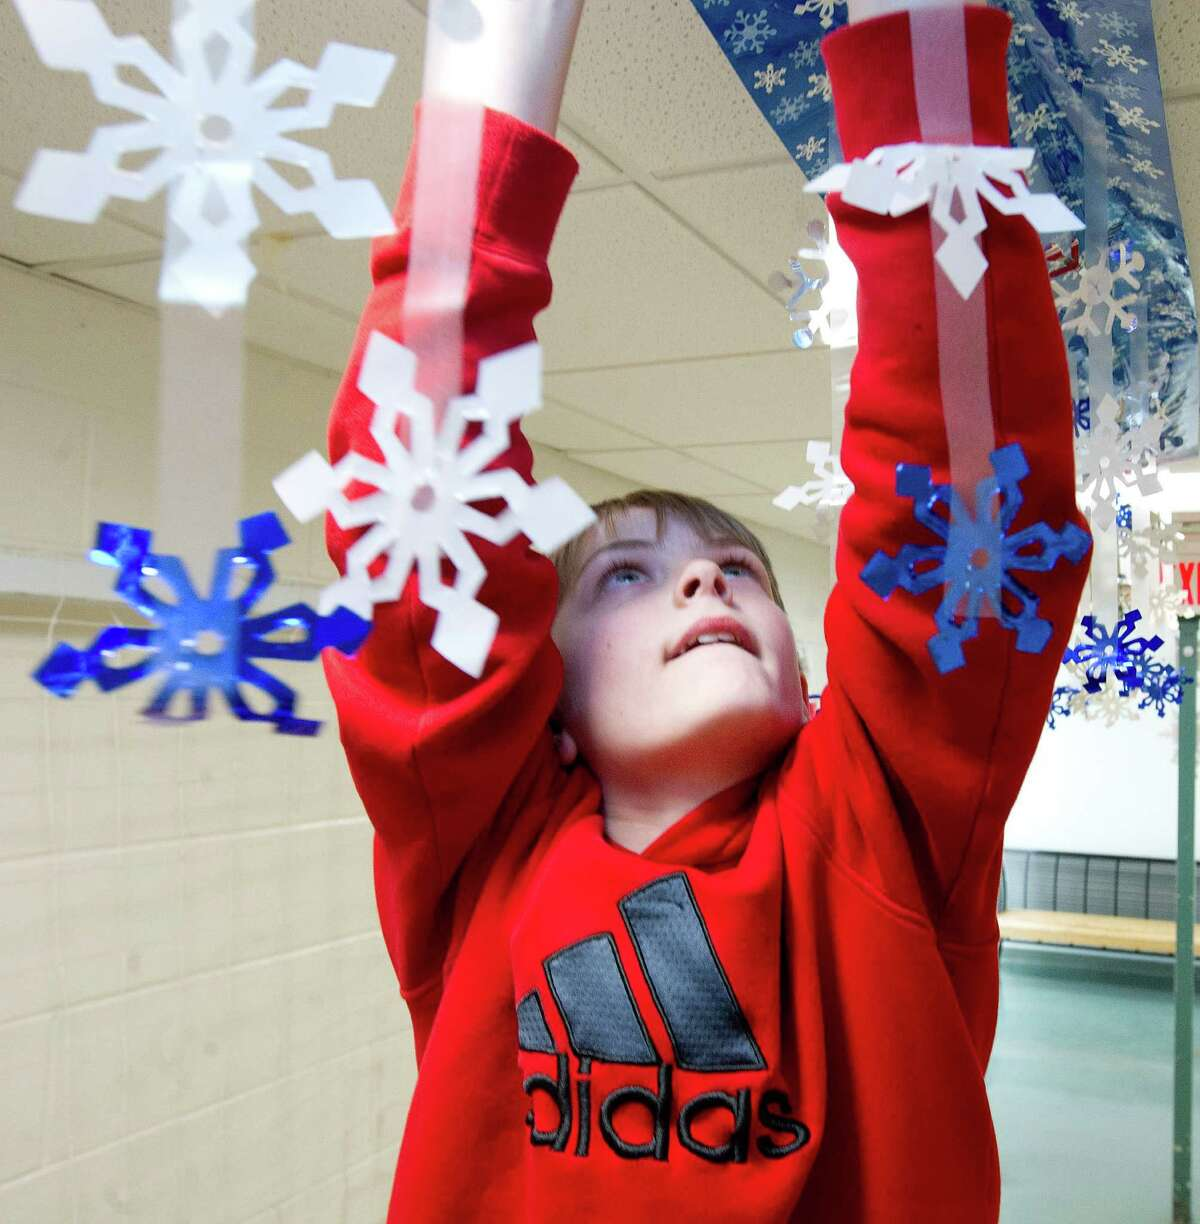 Alex LaValle, 11, helps decorate at Scofield Magnet School for the dance on Friday, February 28, 2014.